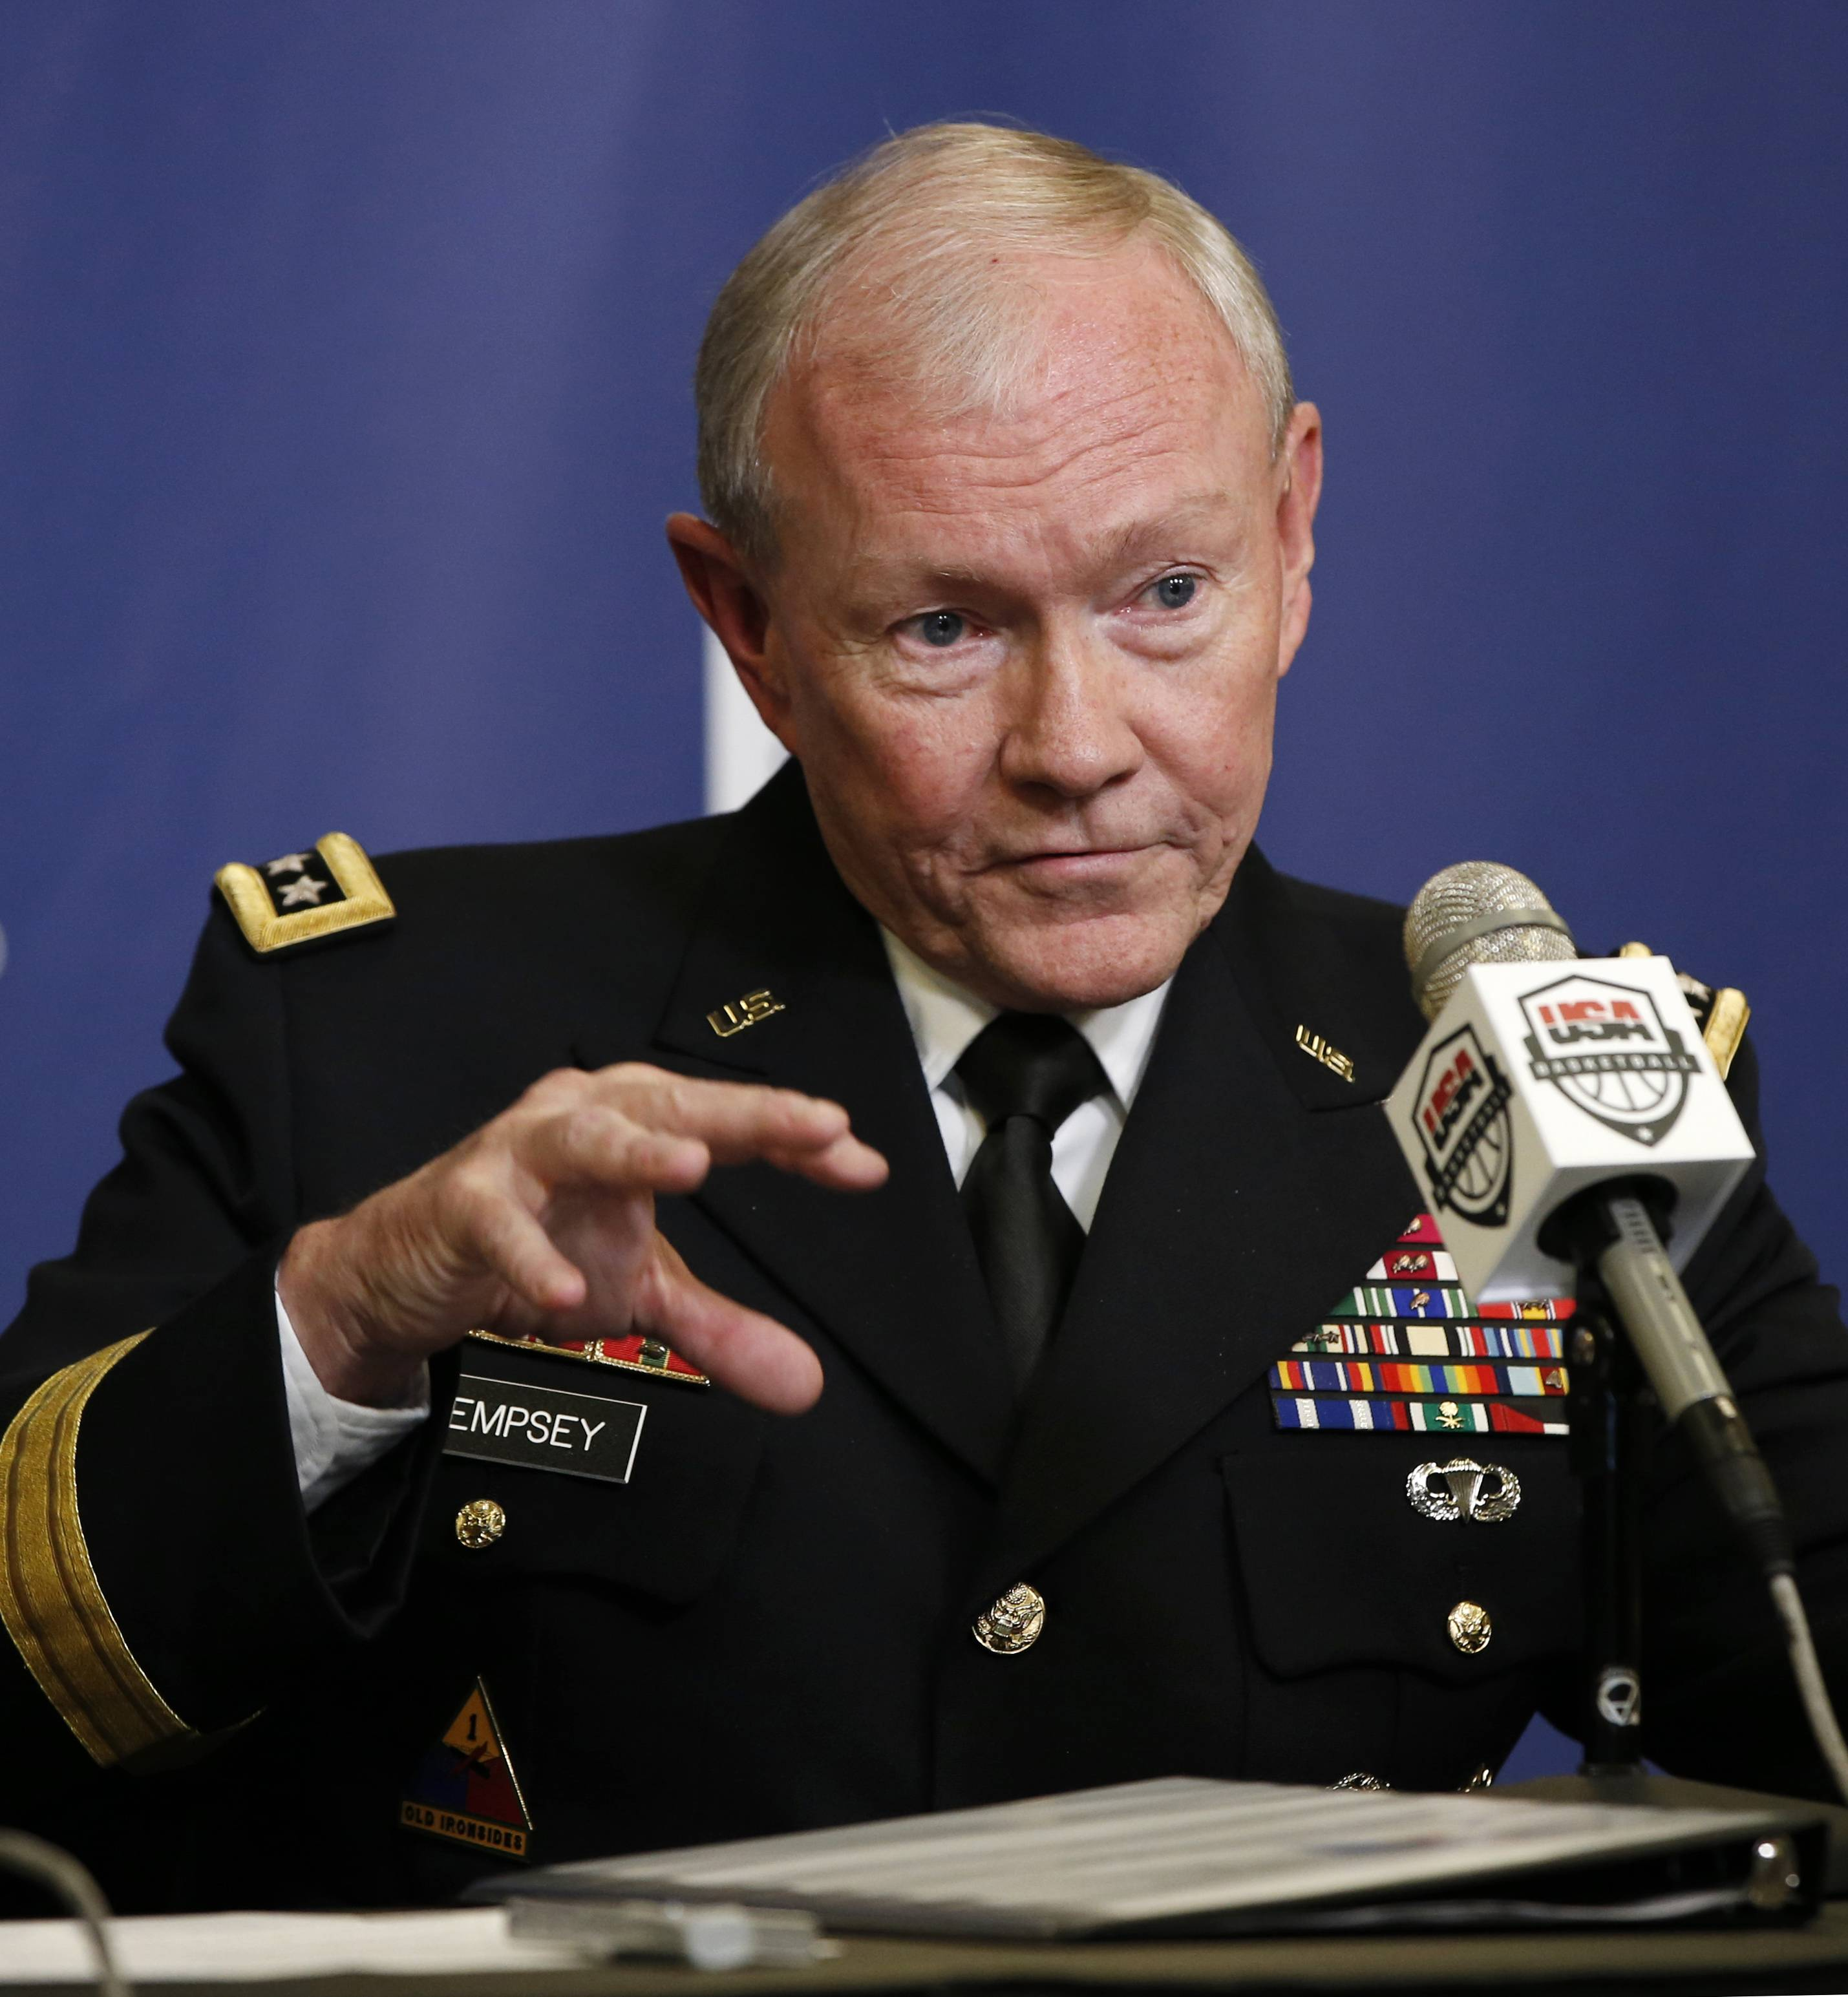 Joint Chiefs Chairman Gen. Martin Dempsey, seen here in an appearance earlier this month, said it's possible to contain the Islamic State militants, but it can't be done permanently without going after the group in Syria.